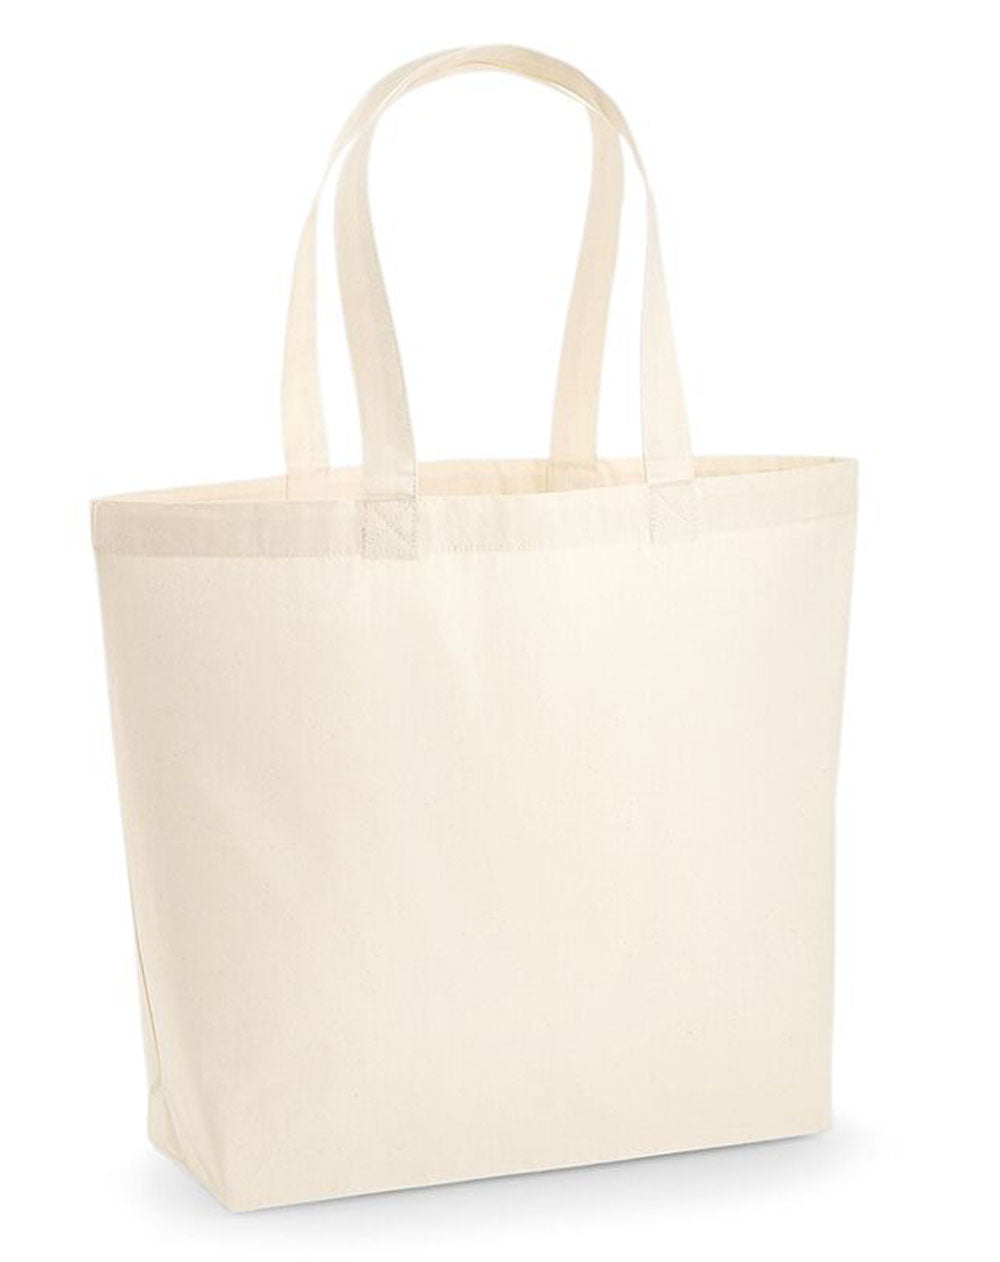 Bonjour ZEBRA kiss woven tote bag in cream